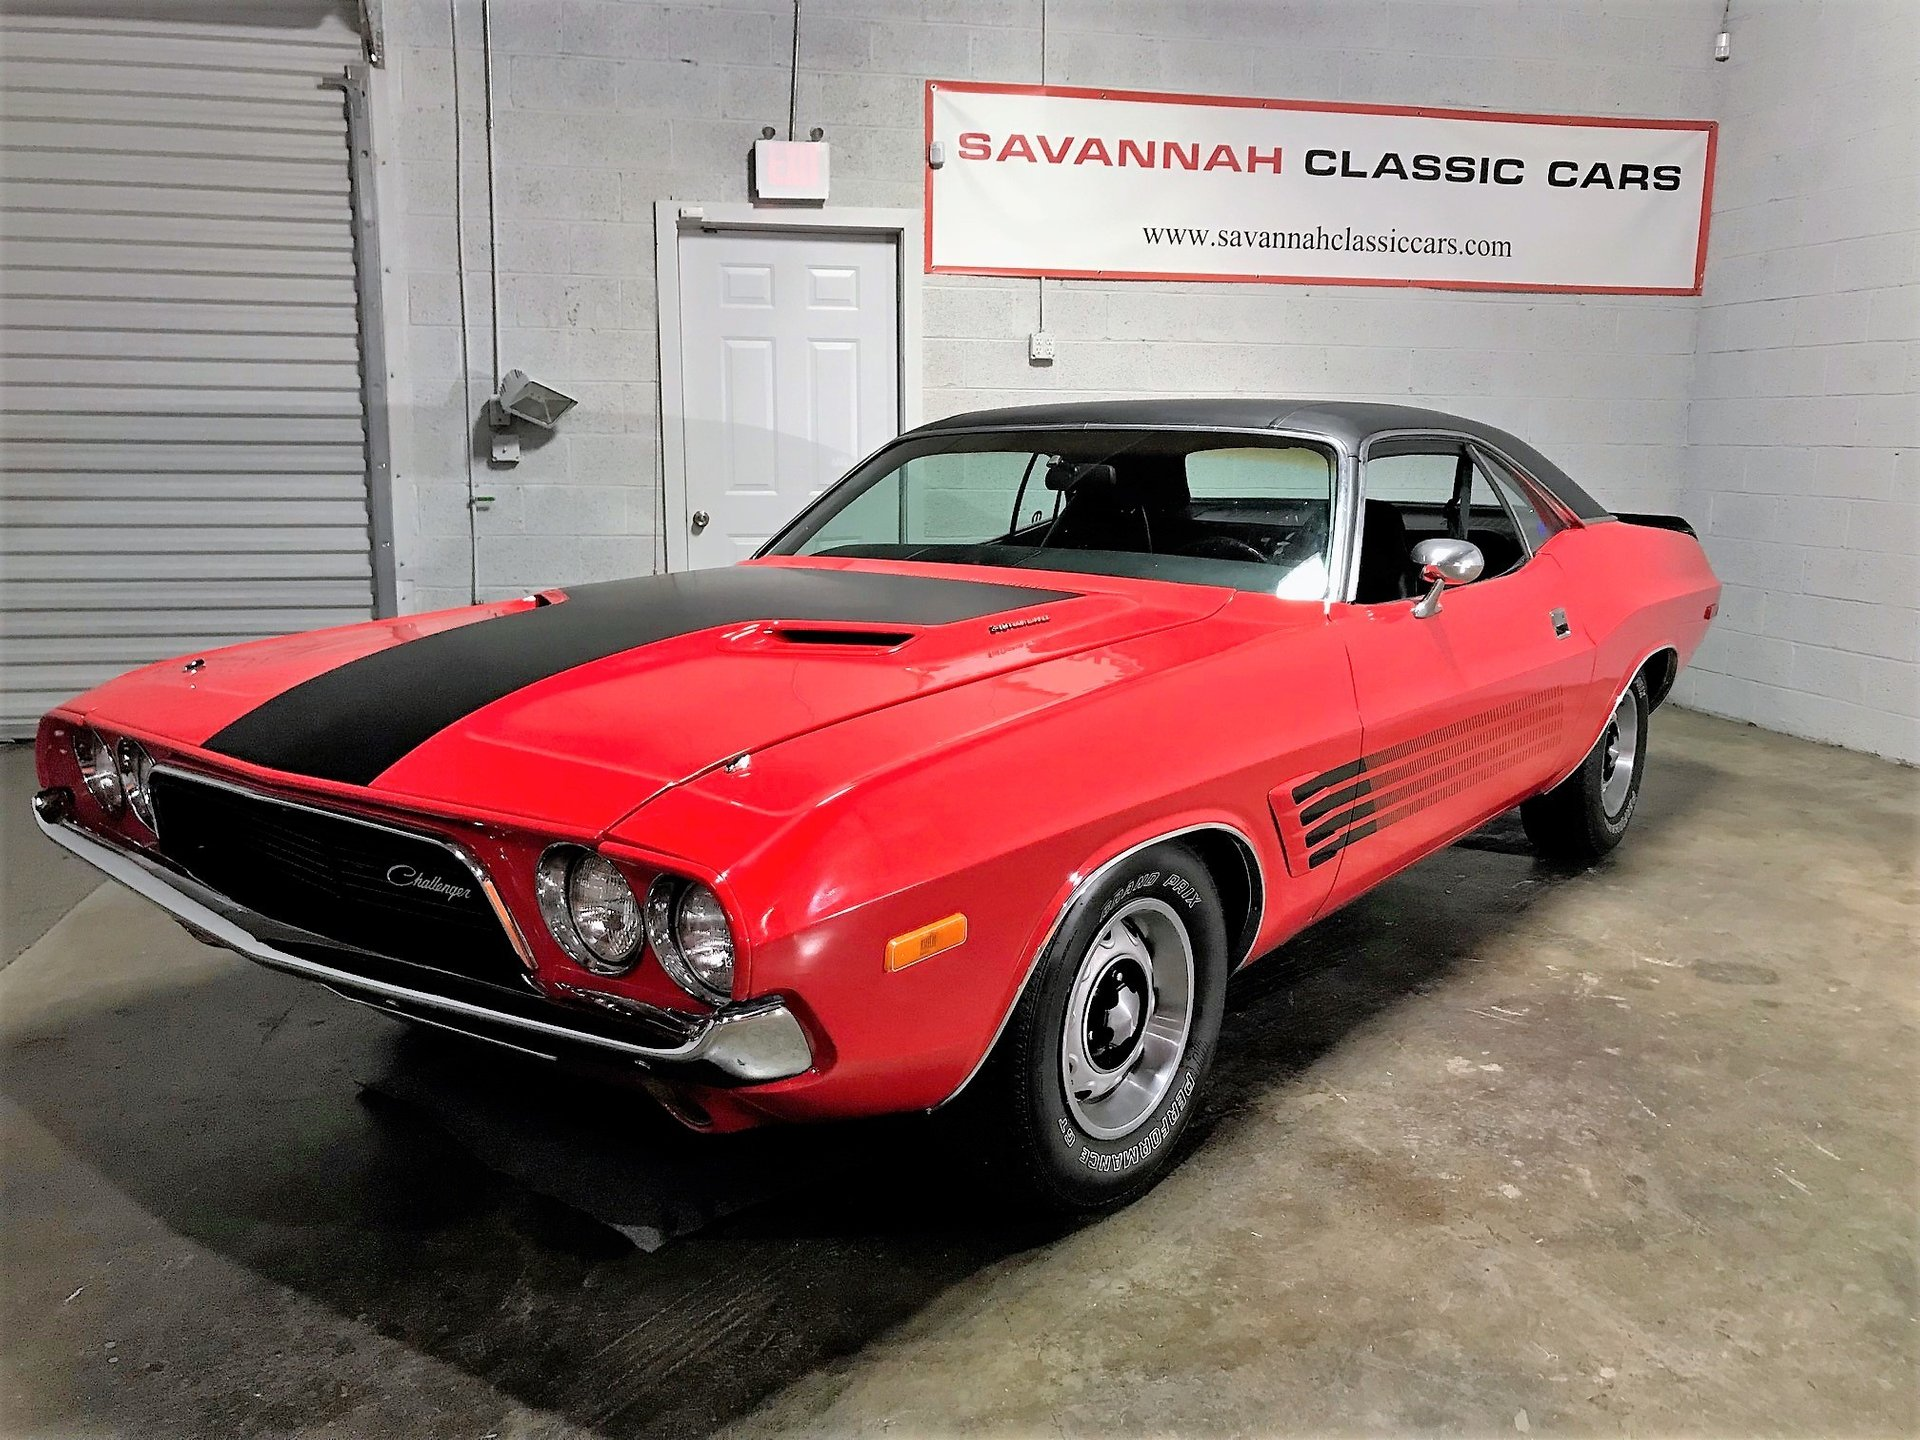 1973 Dodge Challenger Savannah Classic Cars